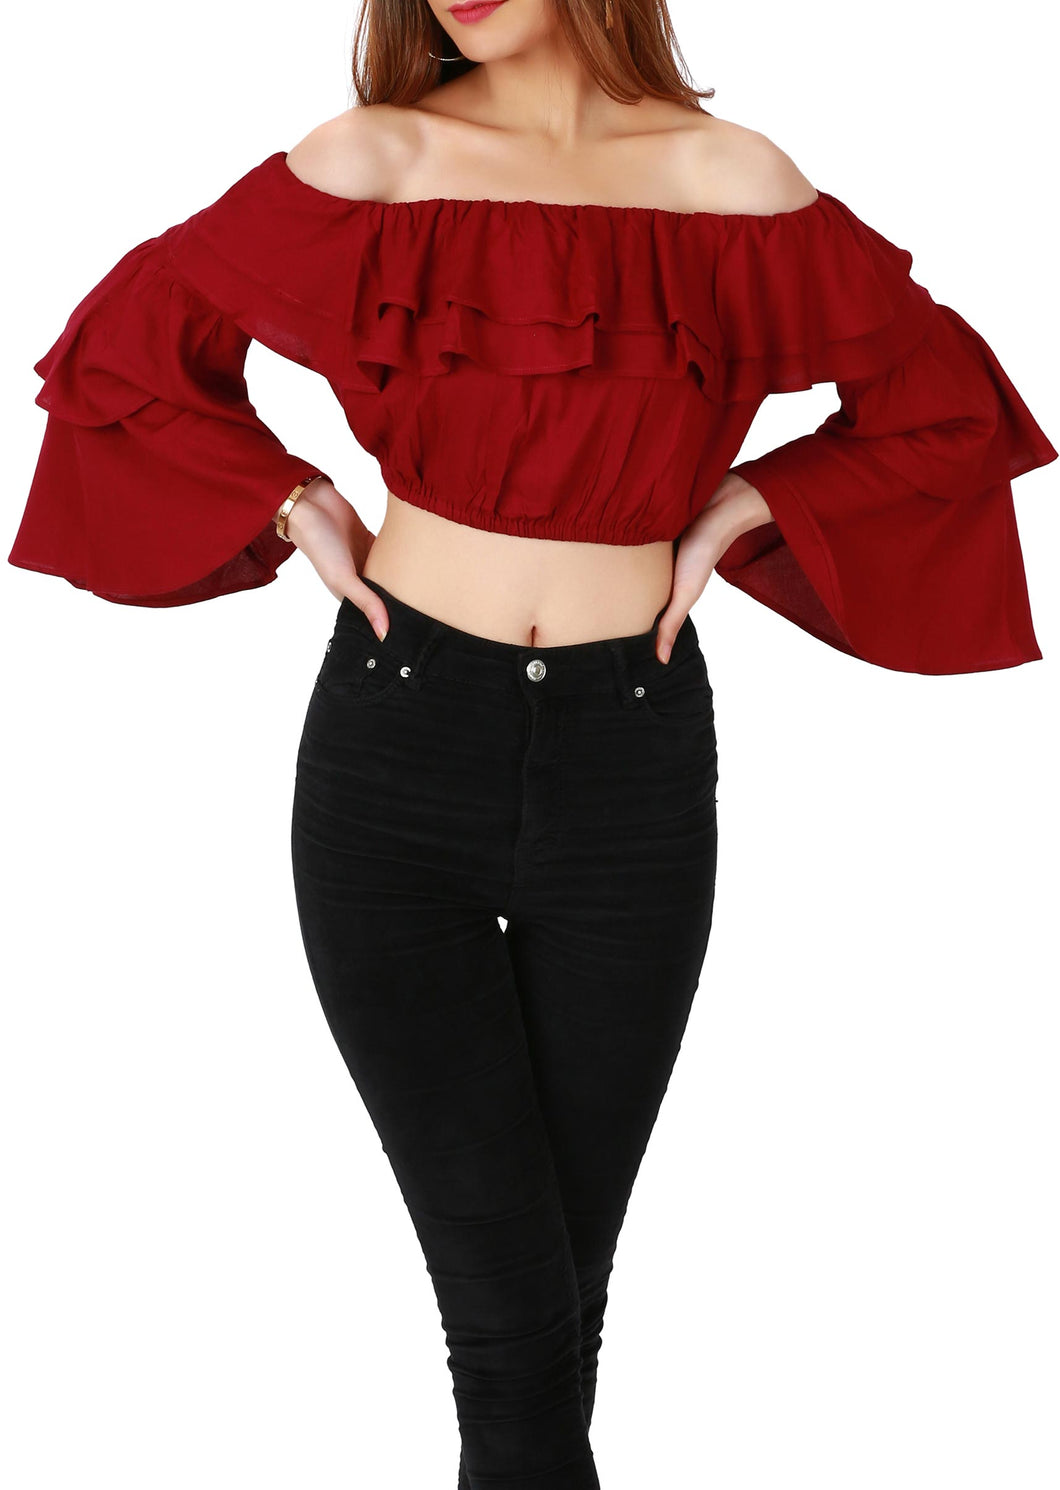 Ruffled crop top